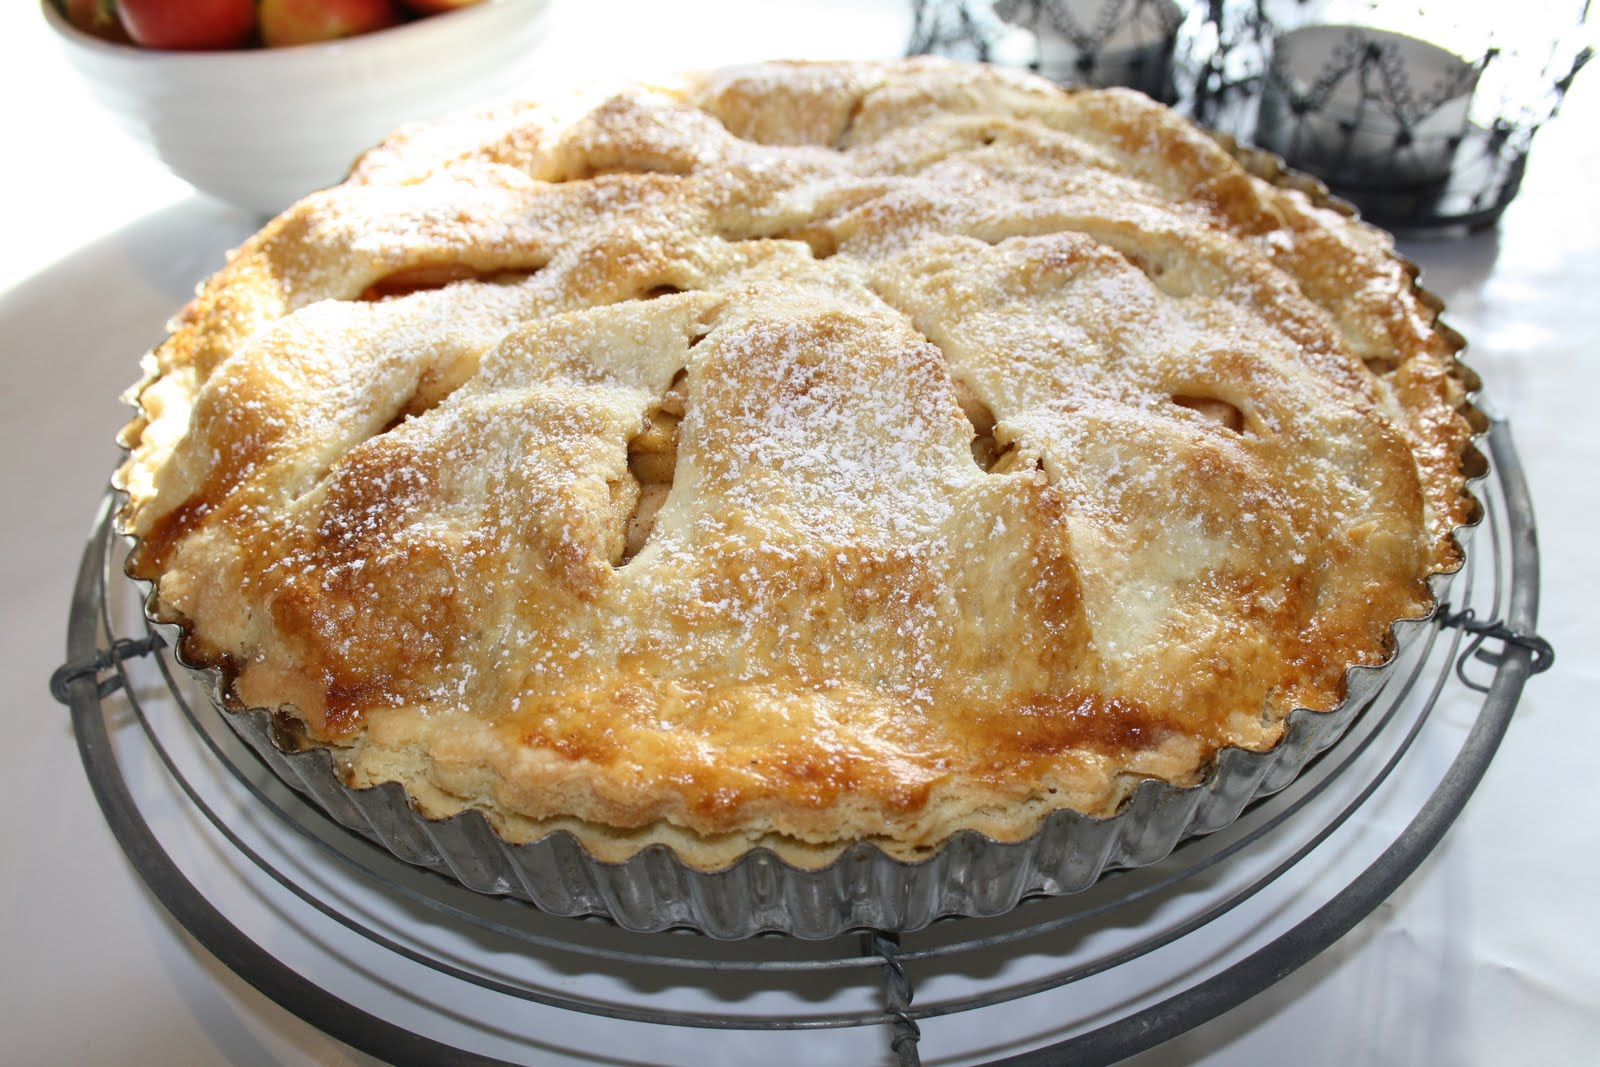 Cinas receptsamling: American apple pie